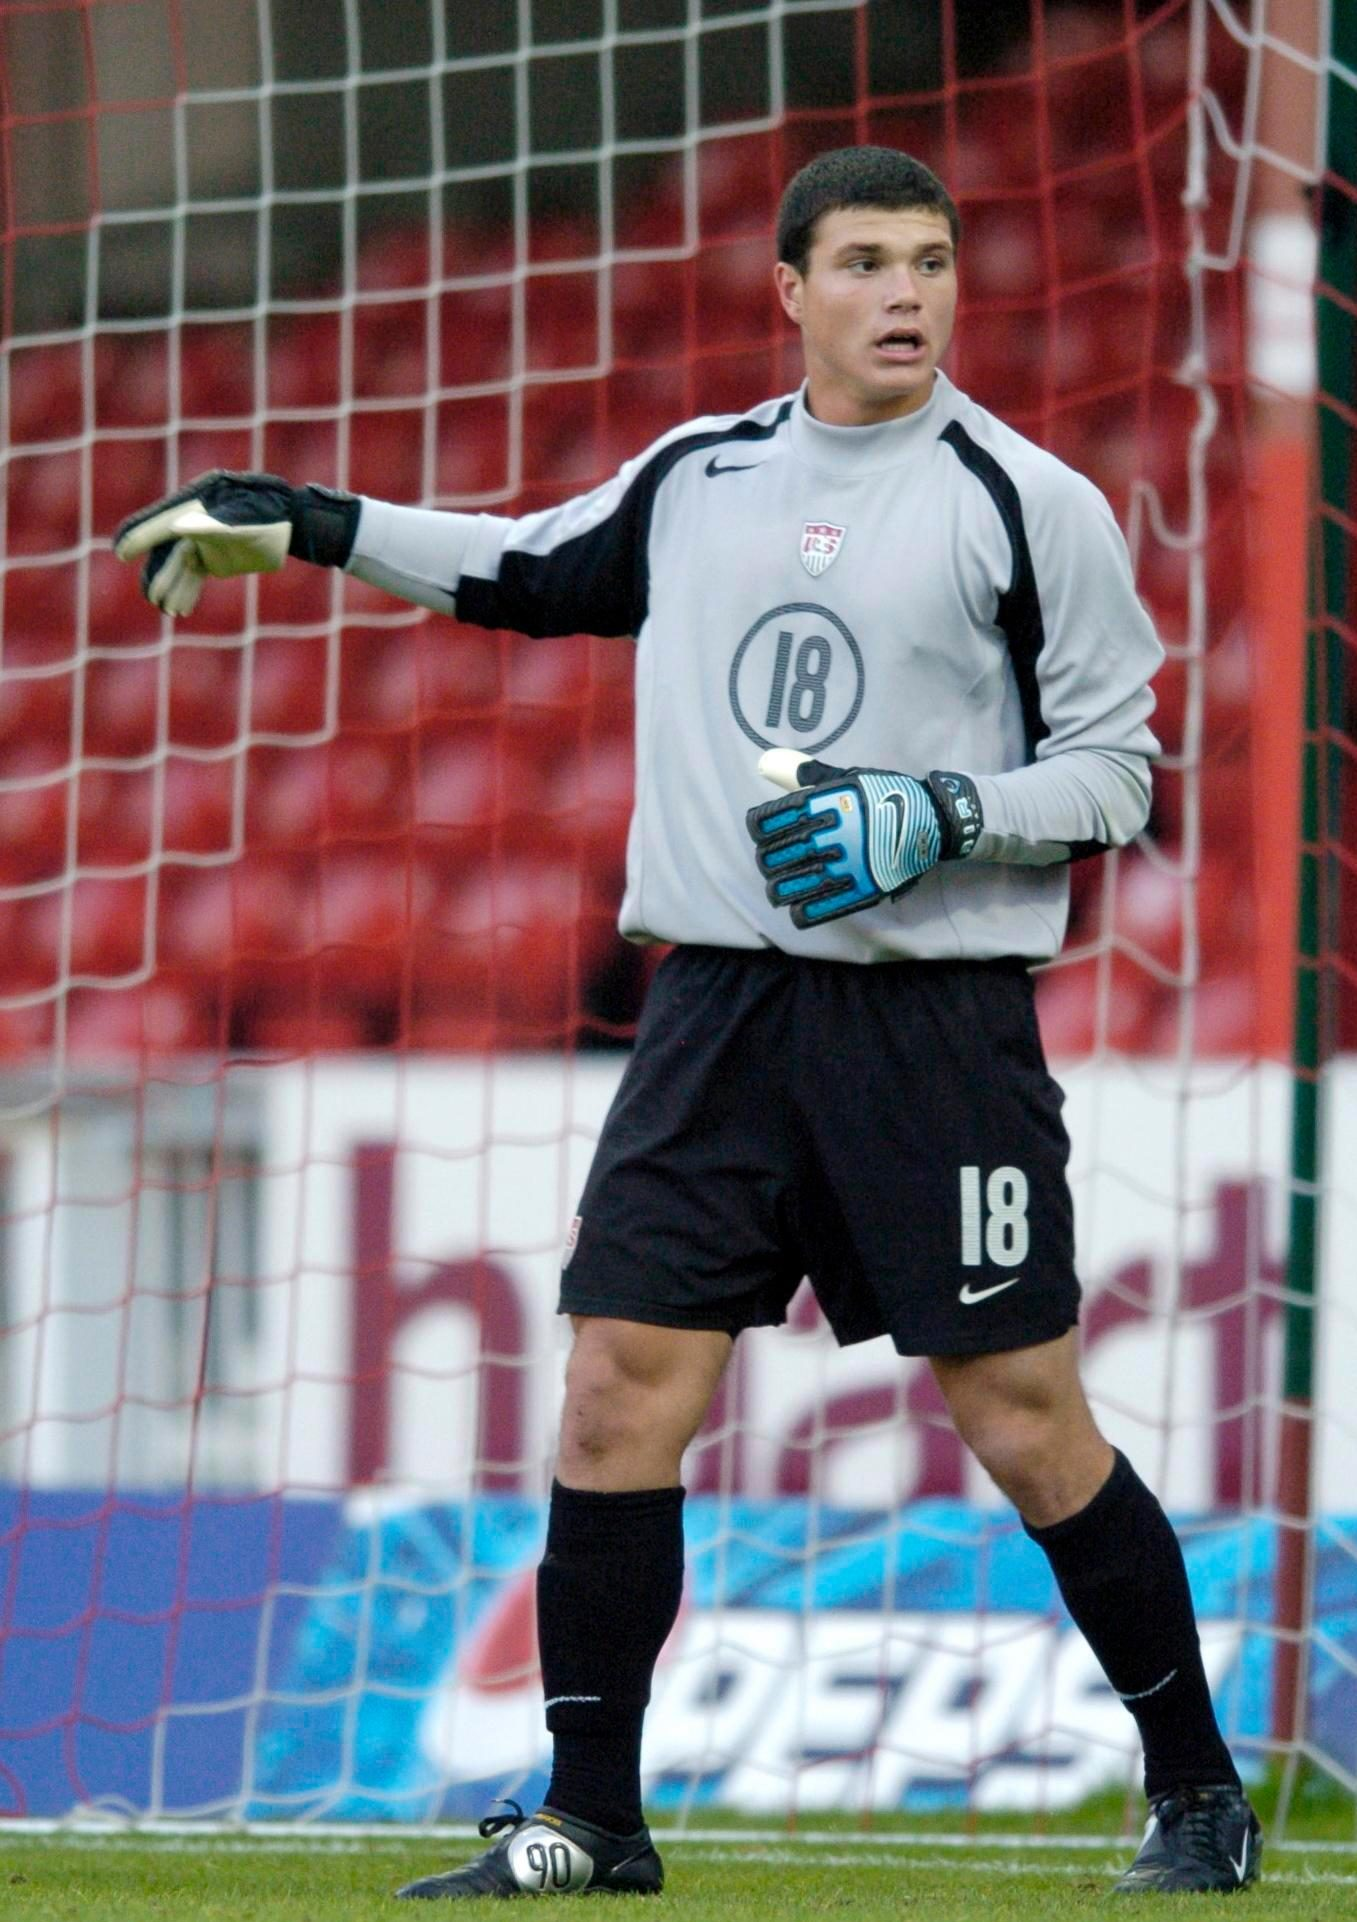 Josh Lambo was an under-17 USA international goalkeeper, having trials at Everton and Sheffield United